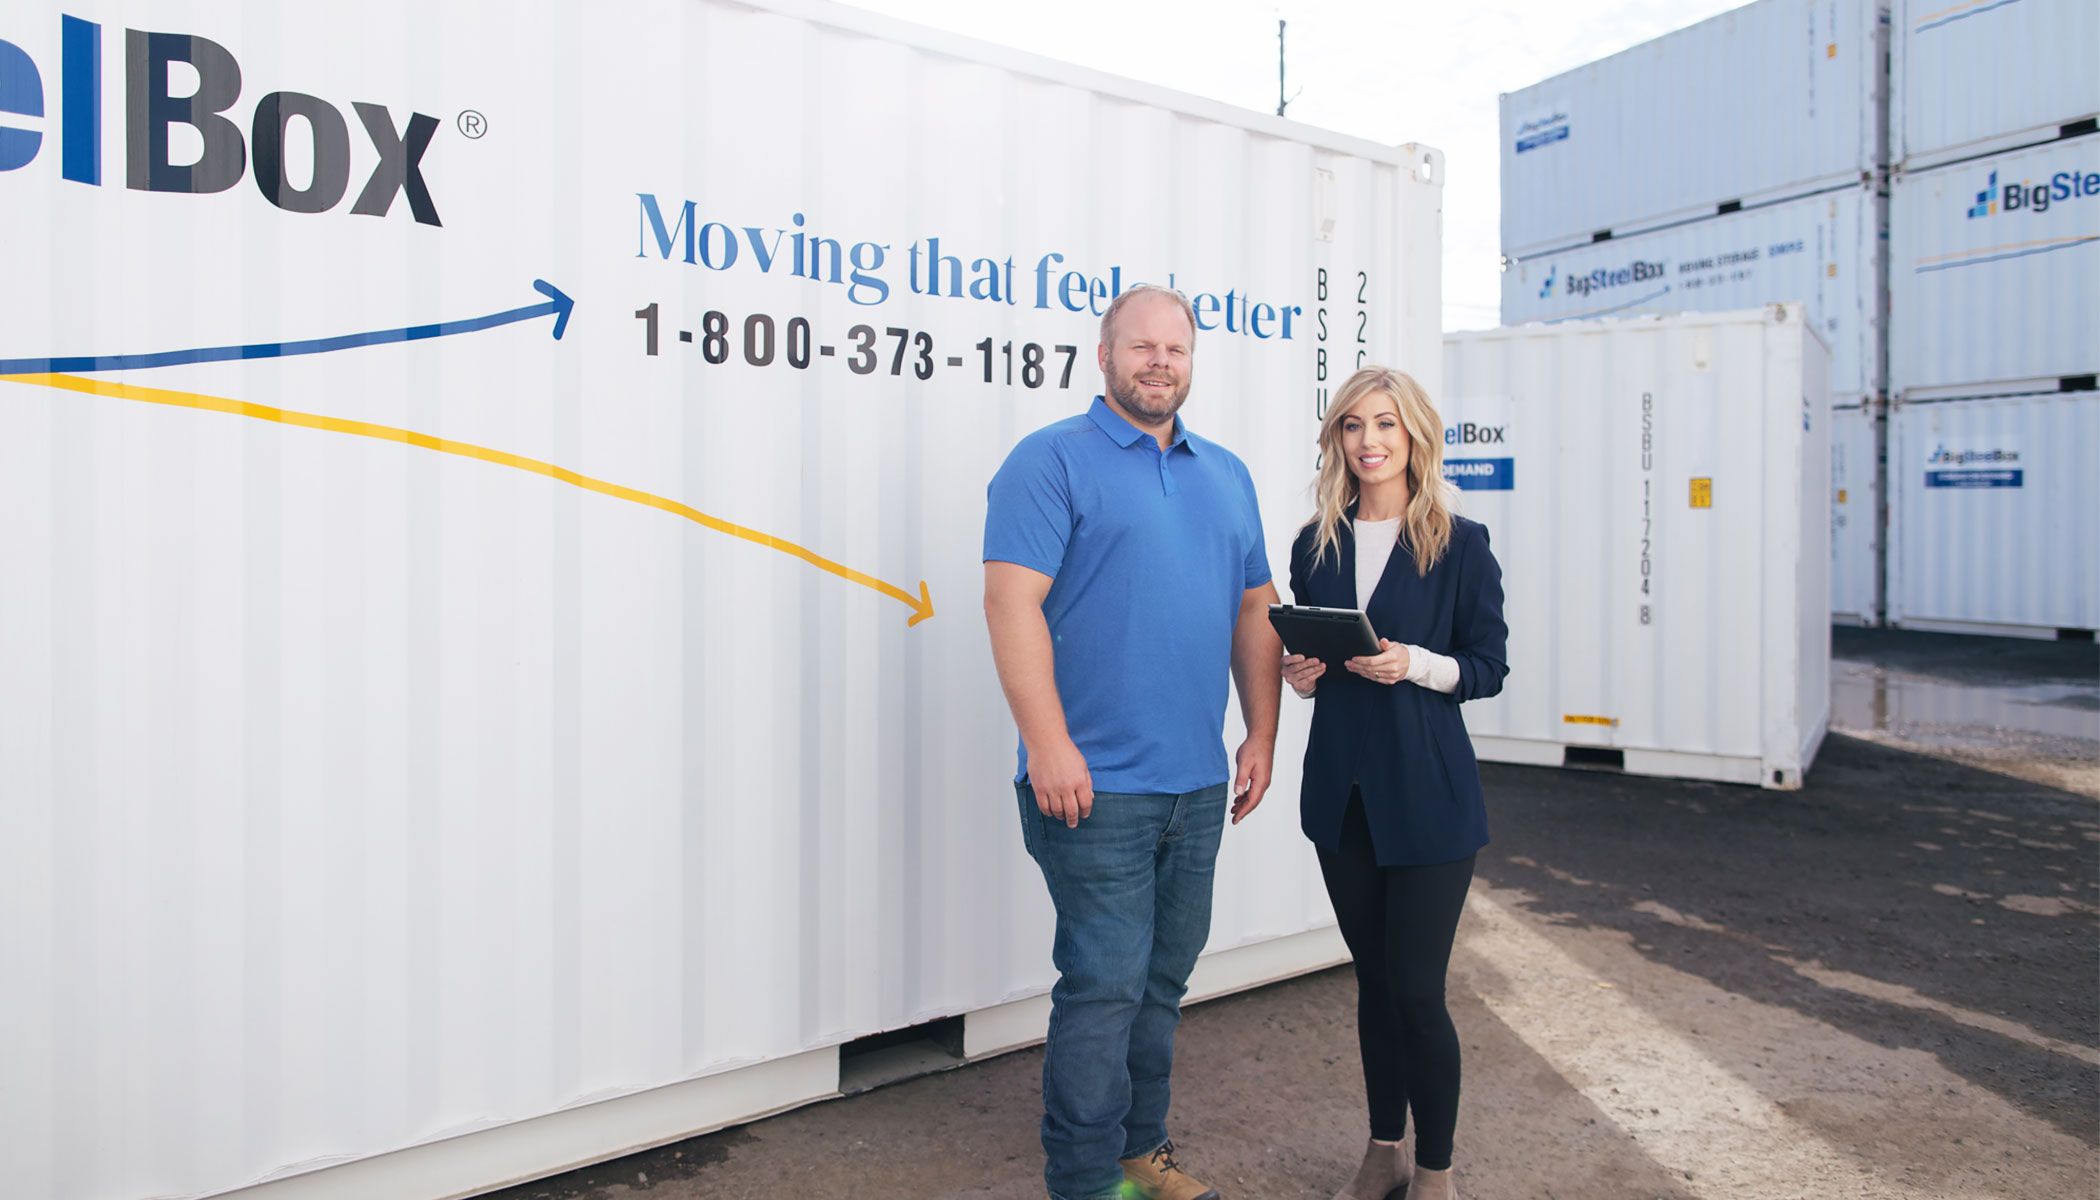 BigSteelBox Staff - how to compare moving quotes